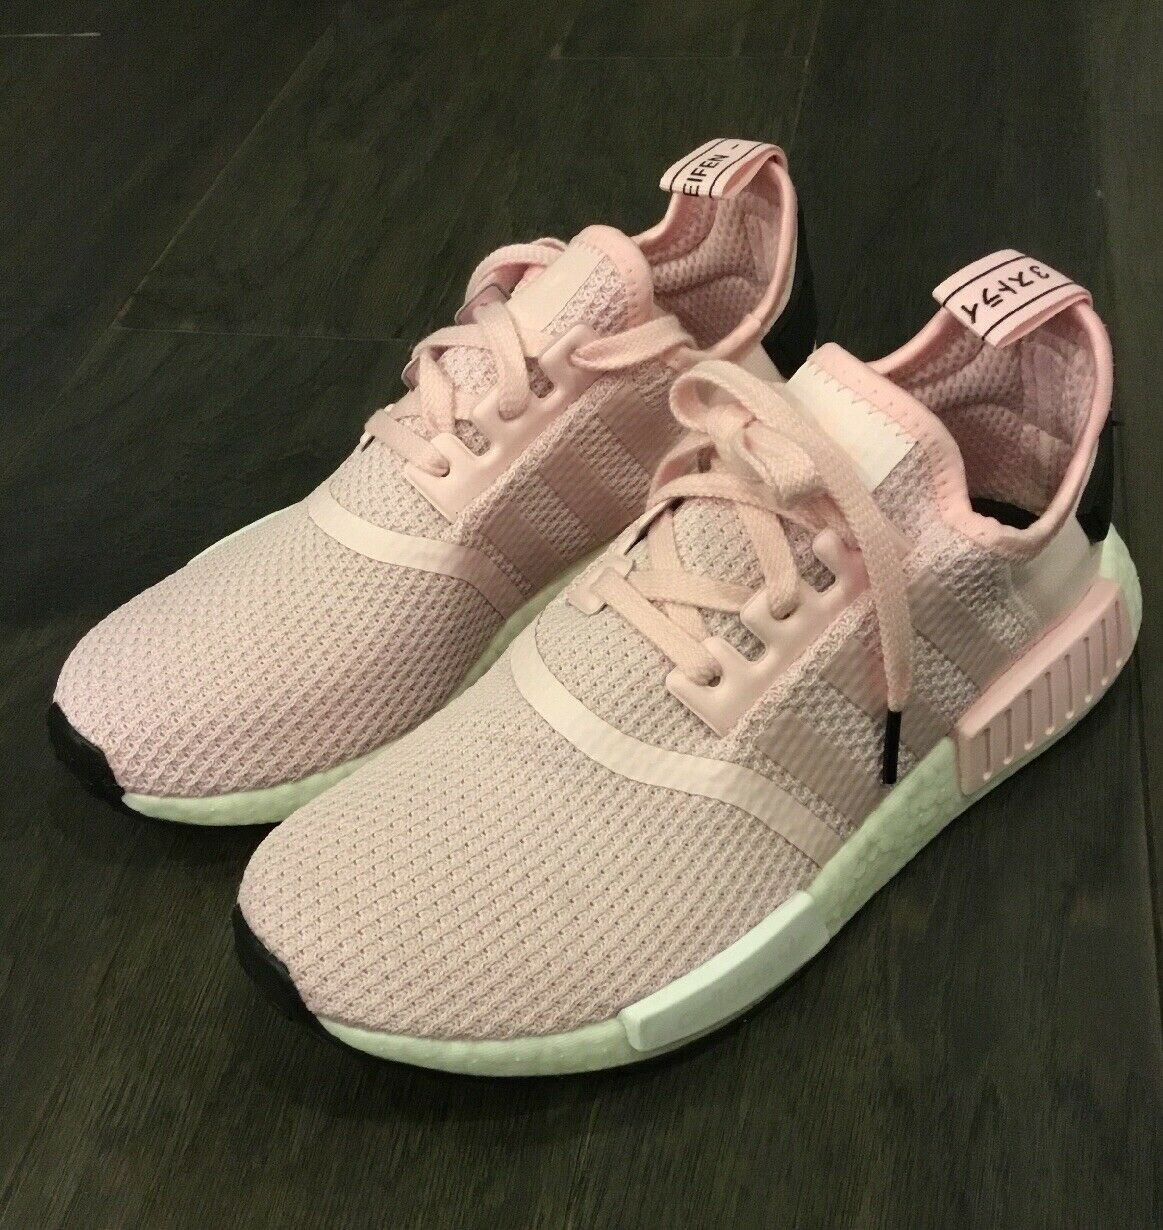 f82b12f4b Women s Adidas NMD R1 W shoes Sneakers B37648 Size 6 Pink Boost New Rare